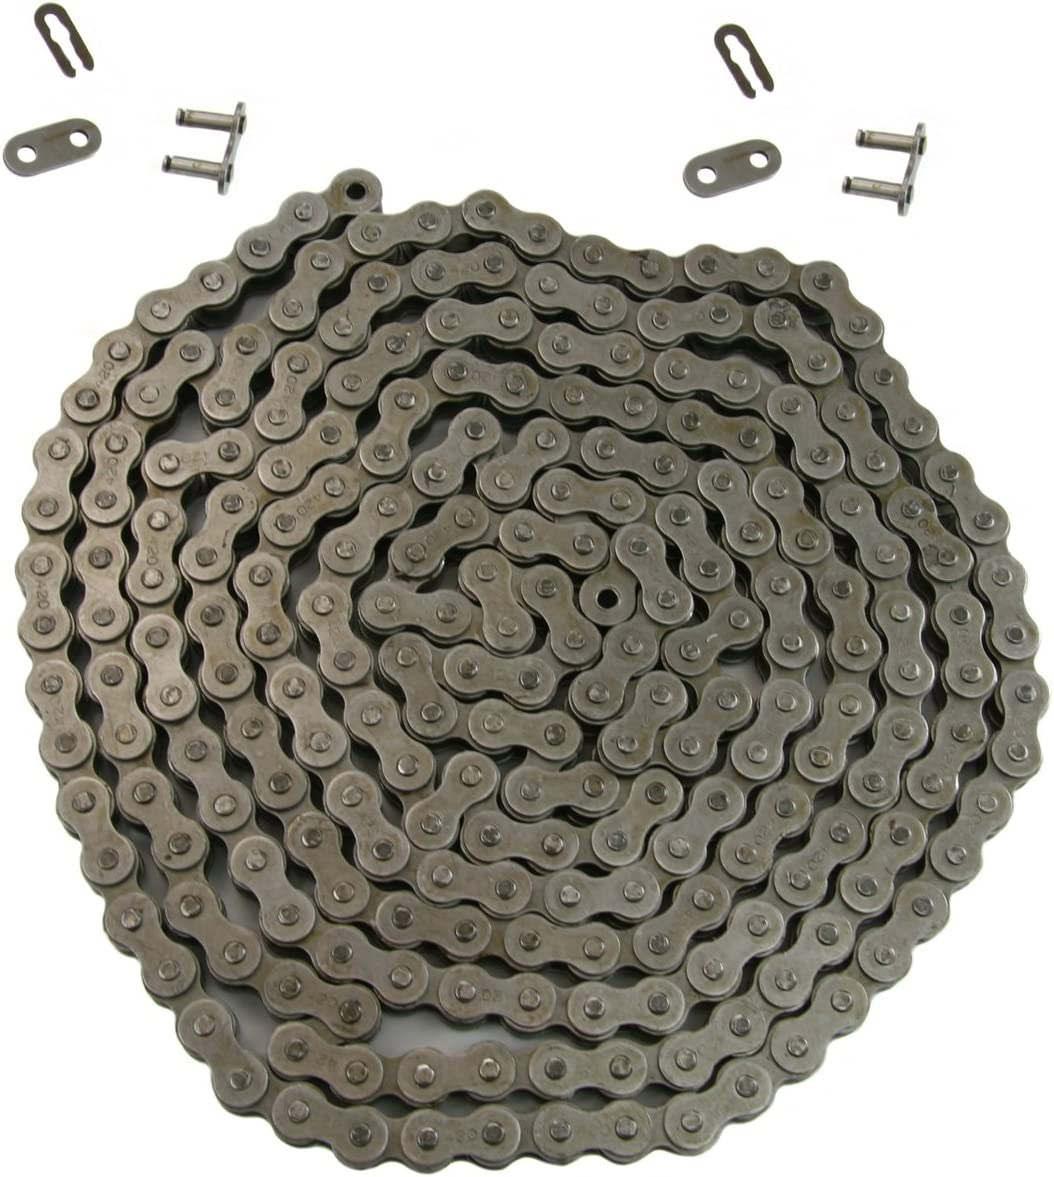 #40 Factory outlet Drive Chain Roller 10 Feet Ka Bike Motorcycle Mini Max 53% OFF Dirt